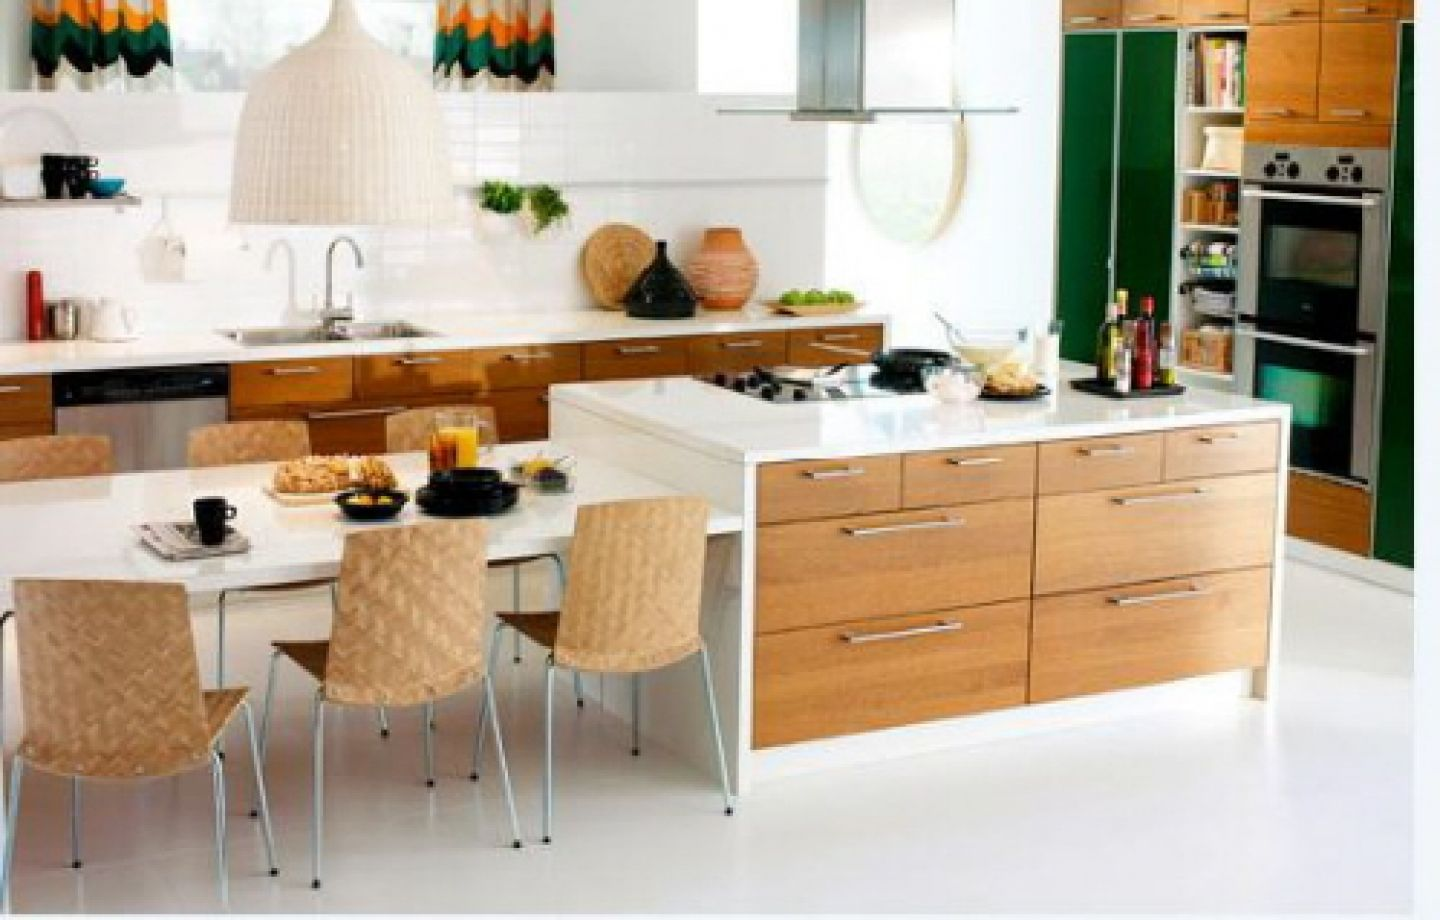 Ikea Kitchen Island With Sink Modular Kitchen Atomic Number 49 Red Indian Linguistic Context Is